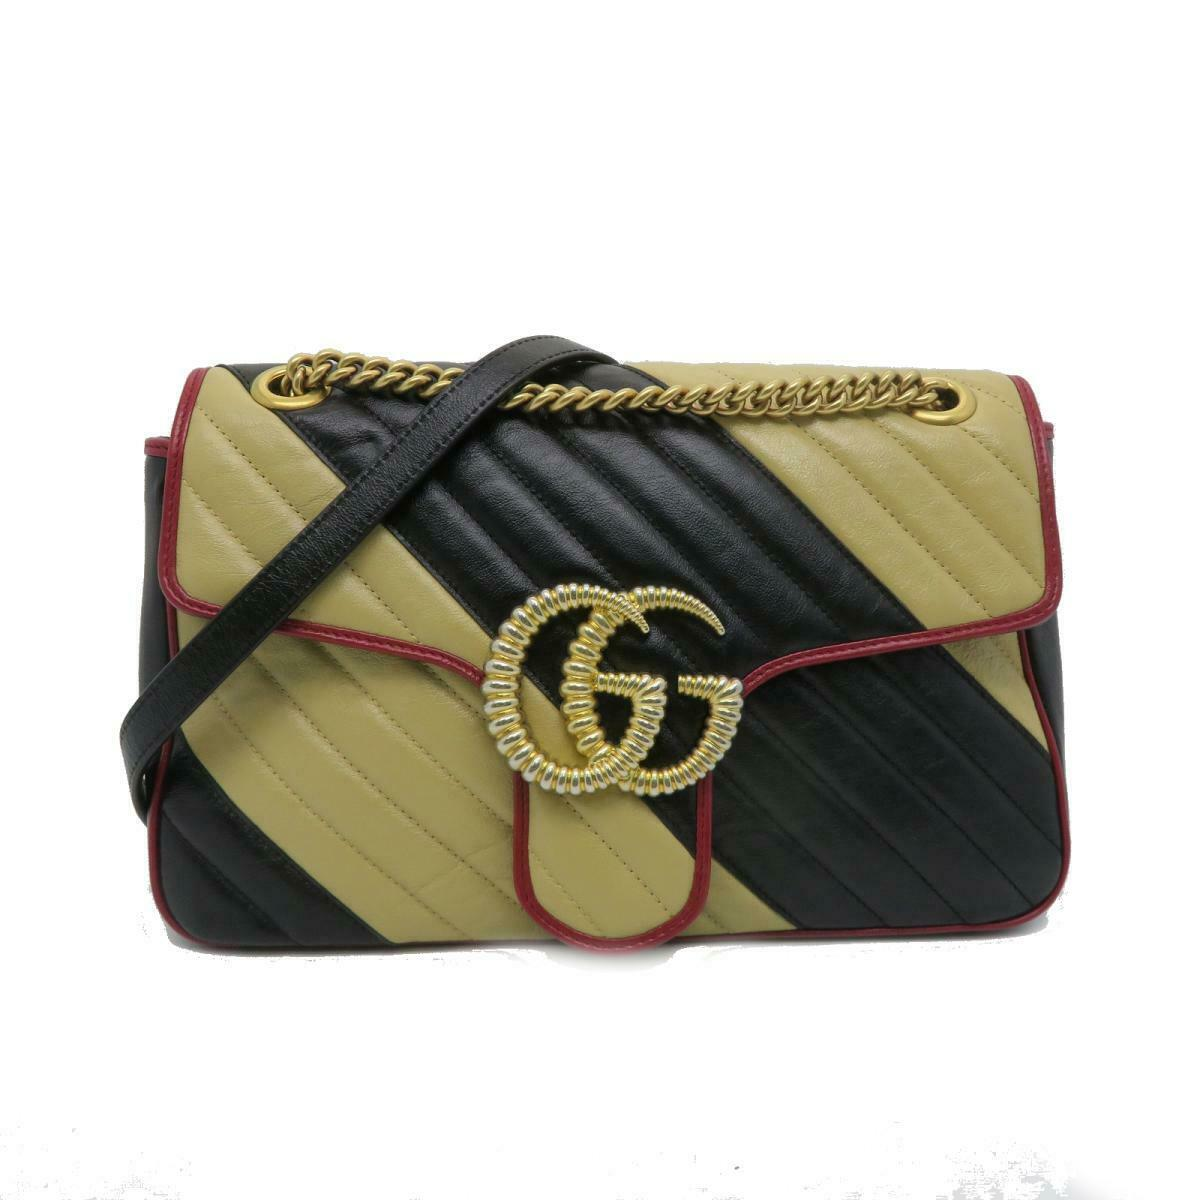 Gucci GG Marmont Medium Matelasse Chain Shoulder Bag Chevron Leather